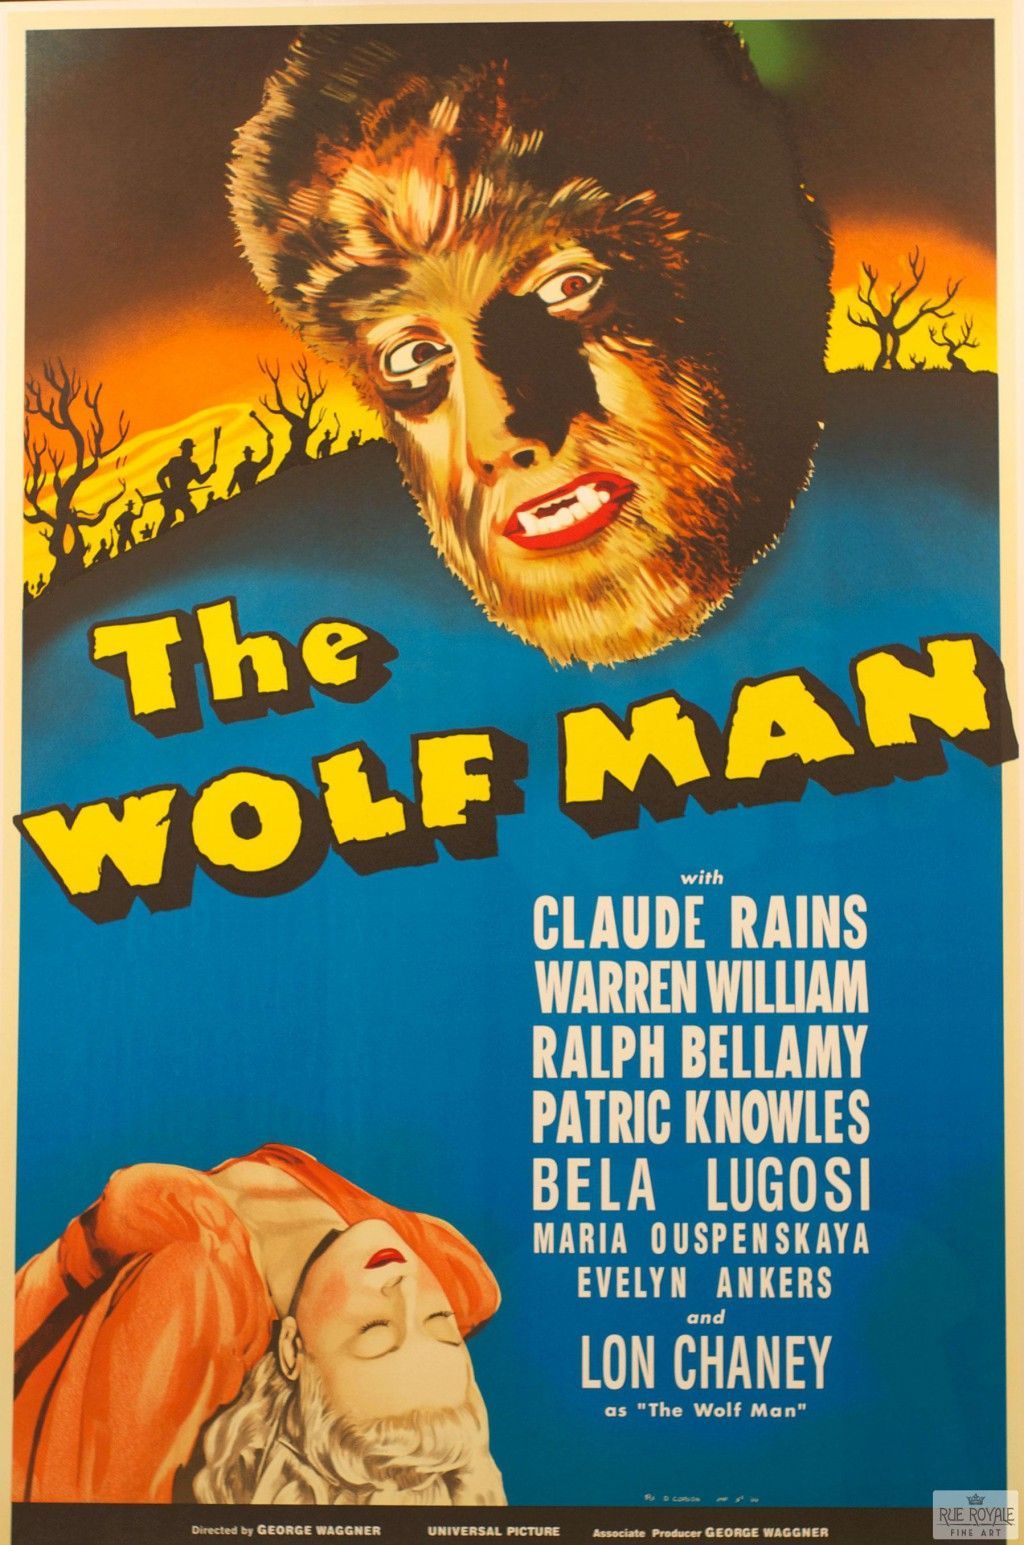 The Wolfman With Images Classic Monster Movies Classic Horror